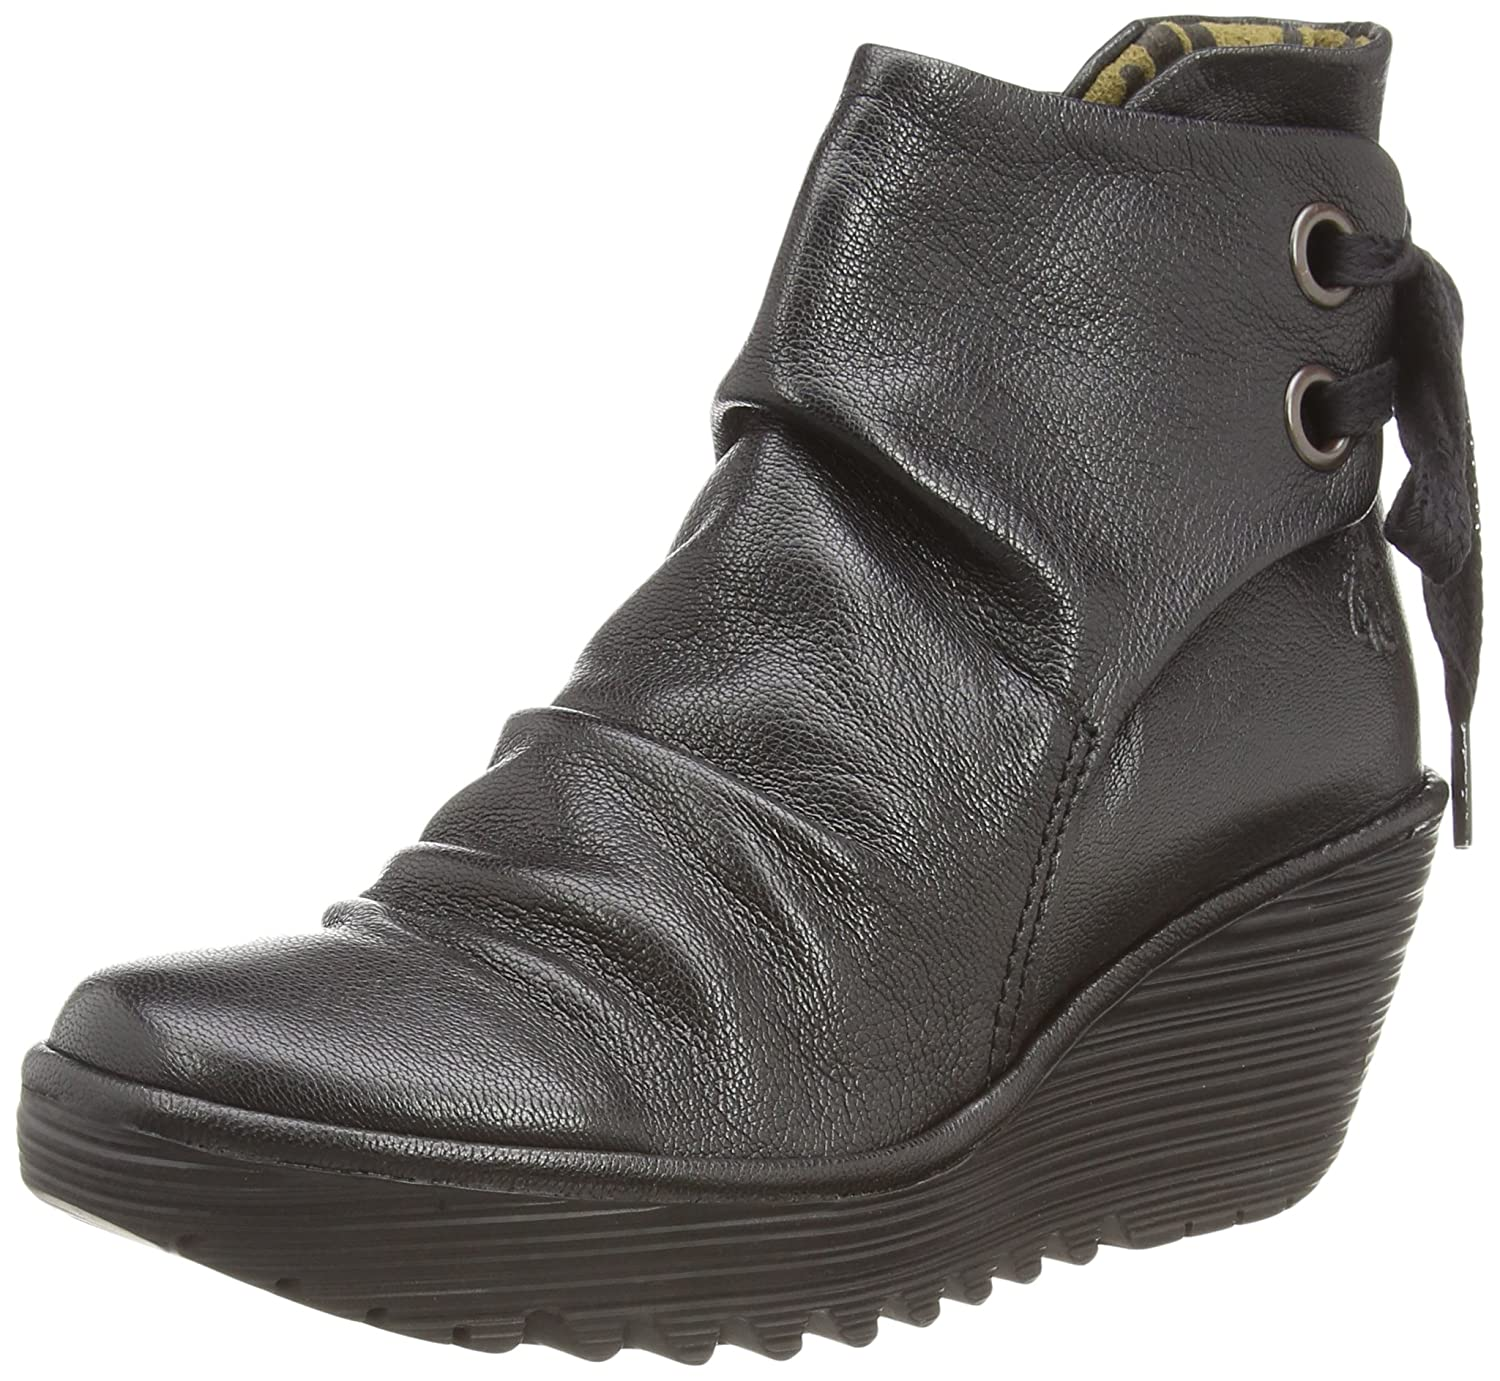 FLY London Women's Yama Ankle Boot B00WU0CSJE 40 EU/9 - 9.5 M US|Black Mousse